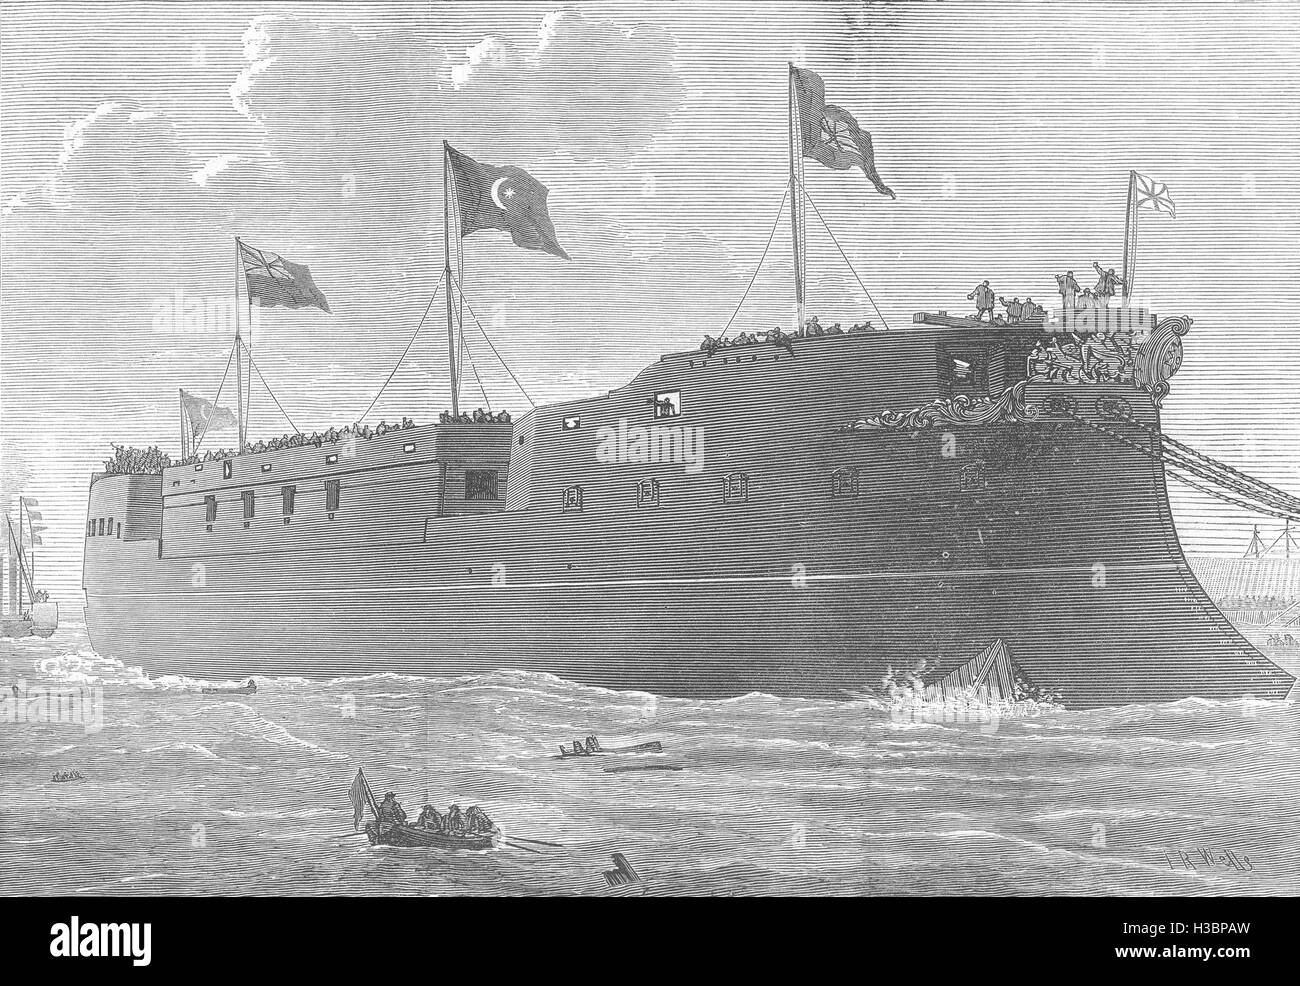 LONDON Launch of the Turkish Iron-clad frigate Mes Oudiyeh at Blackwall 1874. The Illustrated London News - Stock Image